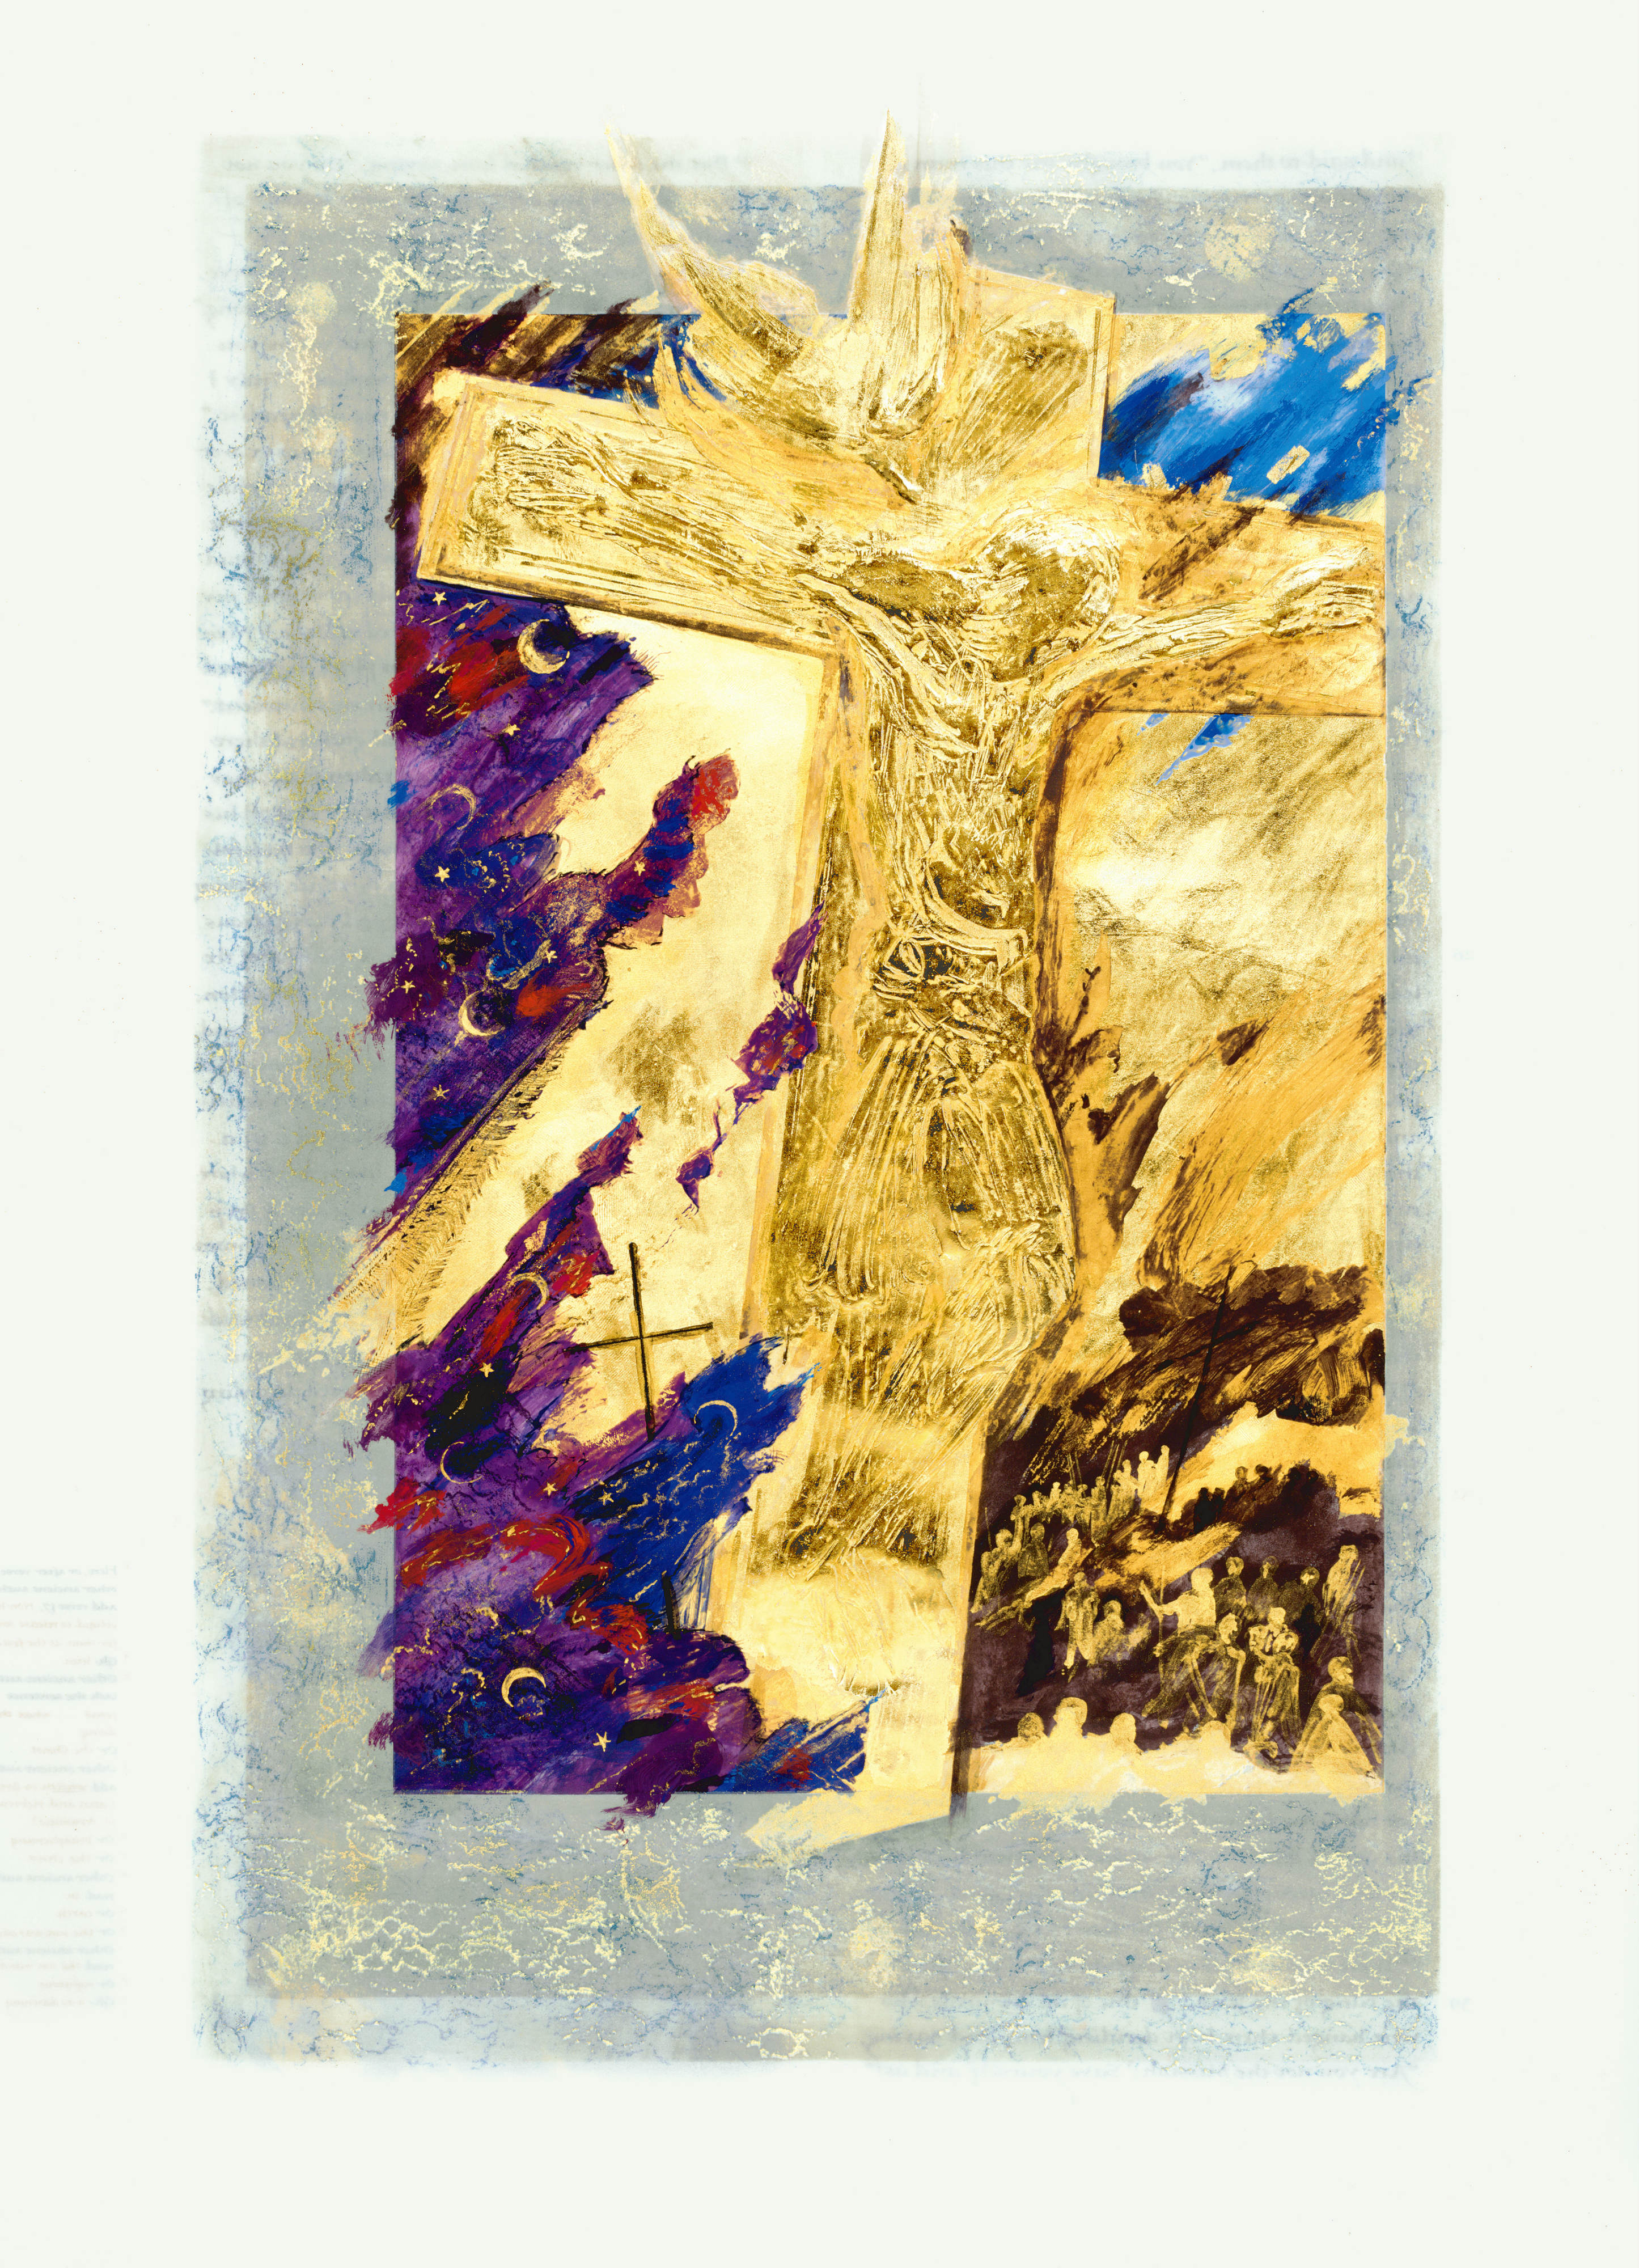 Crucifixion, Donald Jackson, Copyright 2002, The Saint John's Bible, Saint John's University, Collegeville, Minnesota USA. Used by permission. All rights reserved.